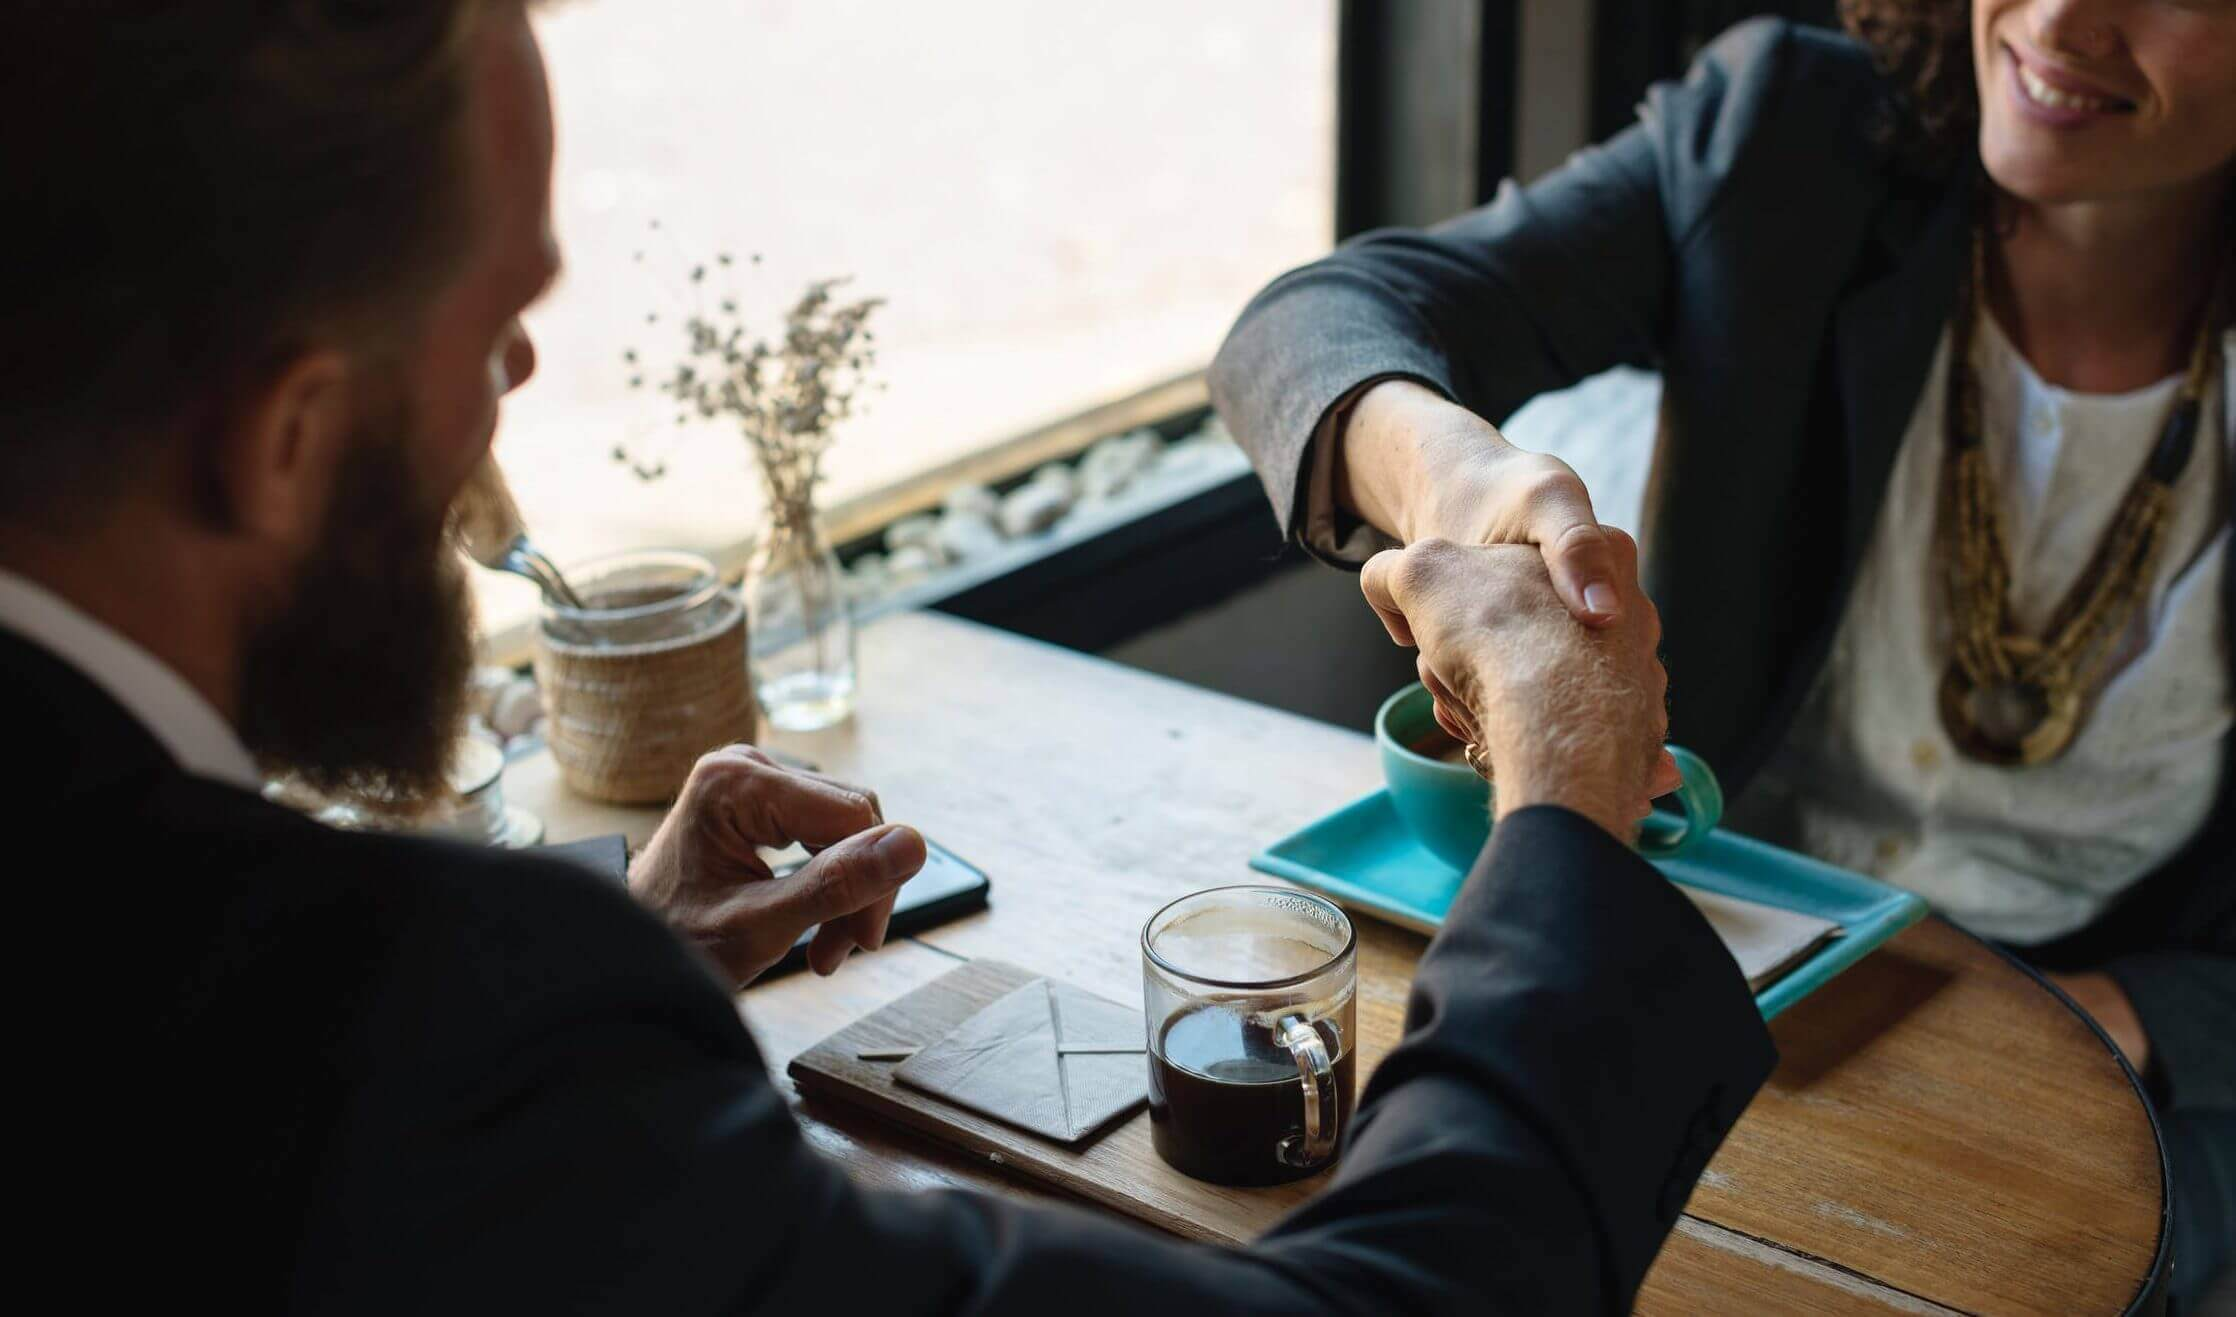 Two business people shake hands while sitting down at a coffee shop table.